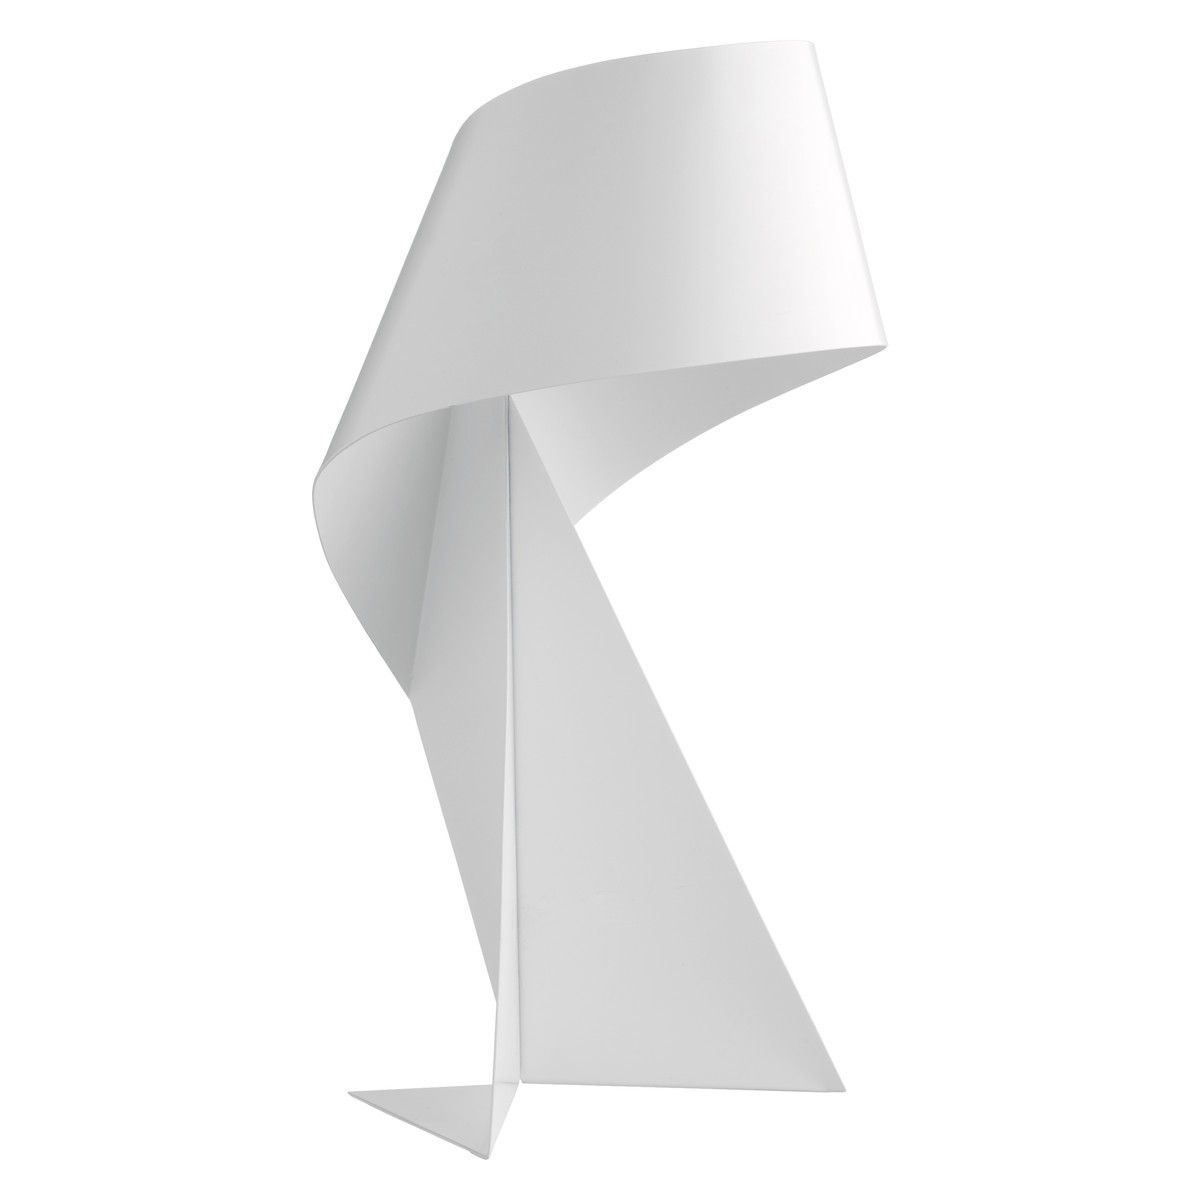 Ribbon white small metal table lamp metal table lamps metals ribbon white small metal table lamp geotapseo Images